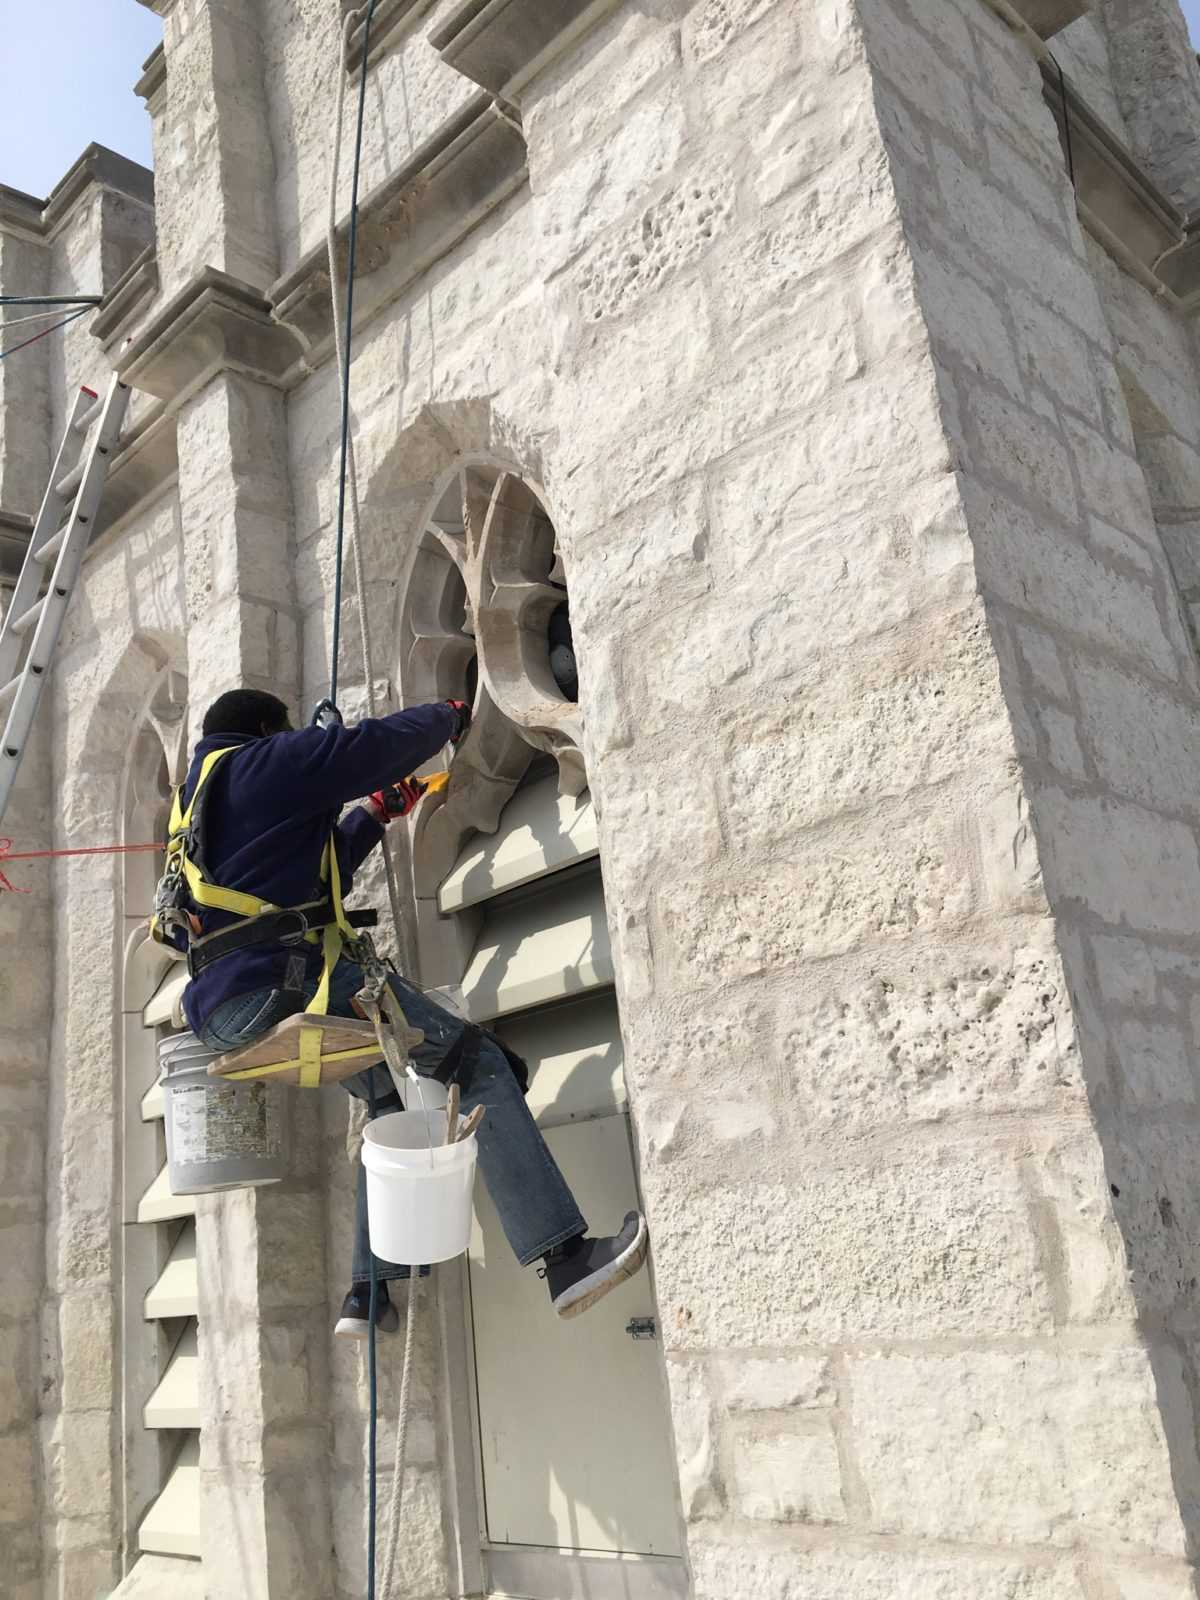 Steeplejack working on tower